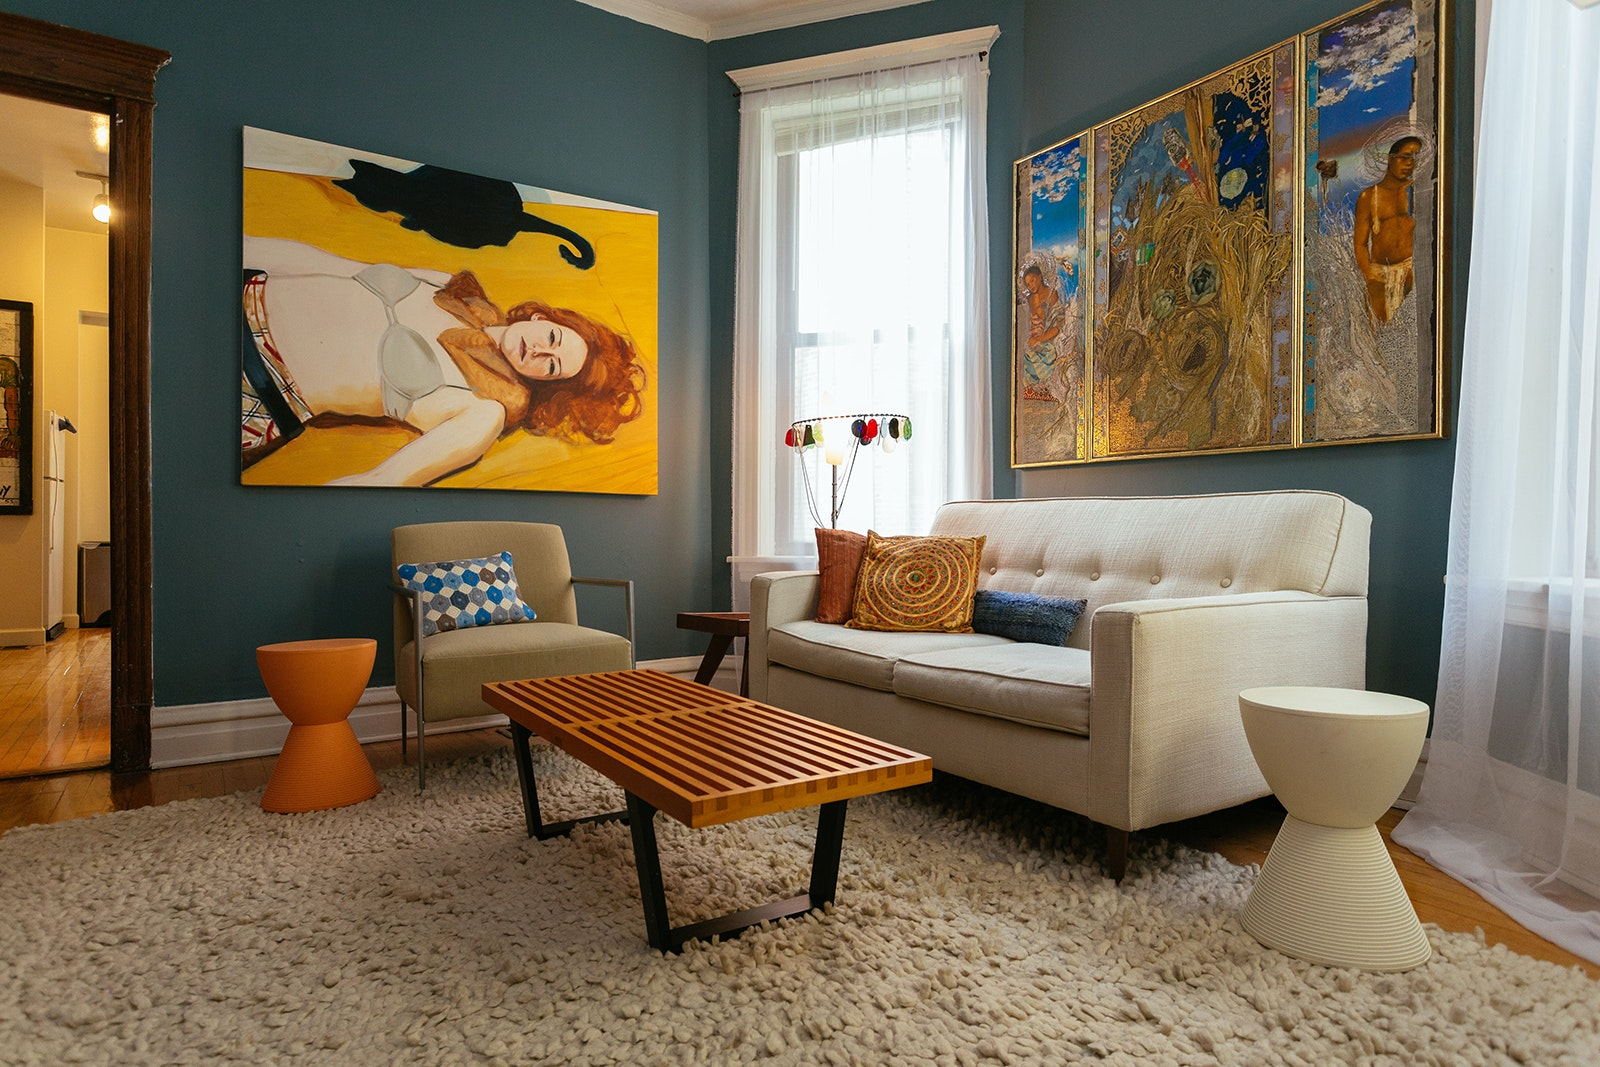 Artsy digs await in this shared apartment in Uptown.